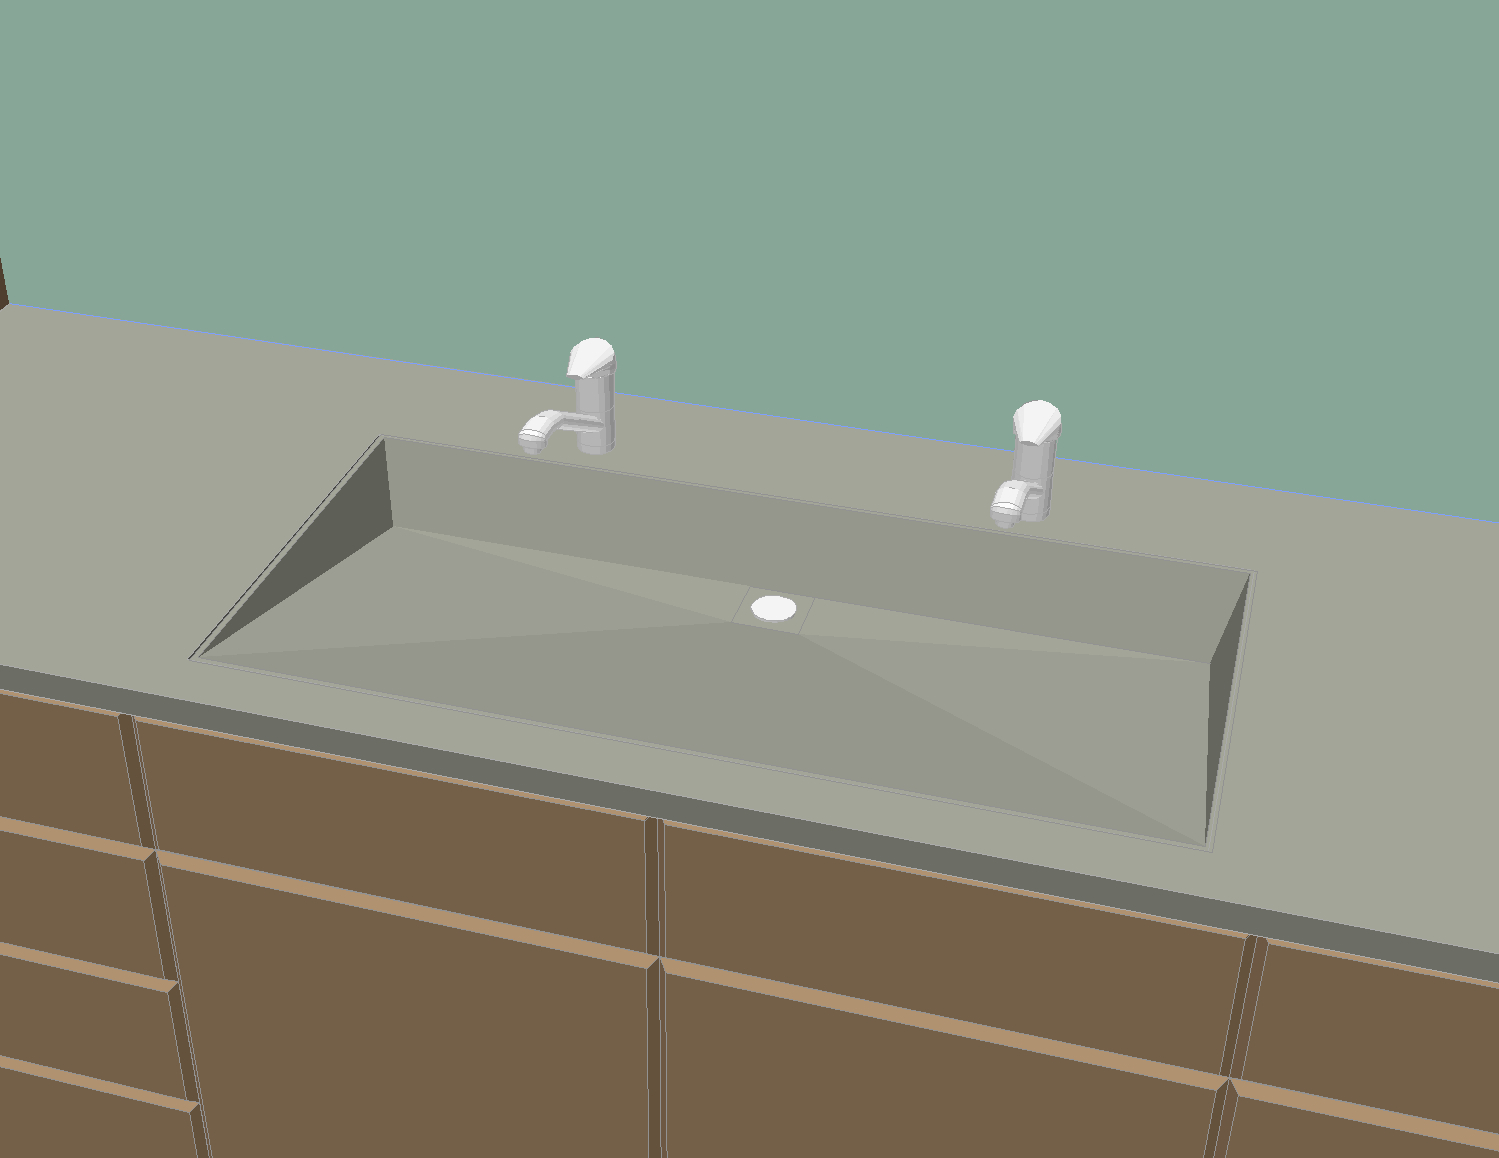 Early concrete sink design